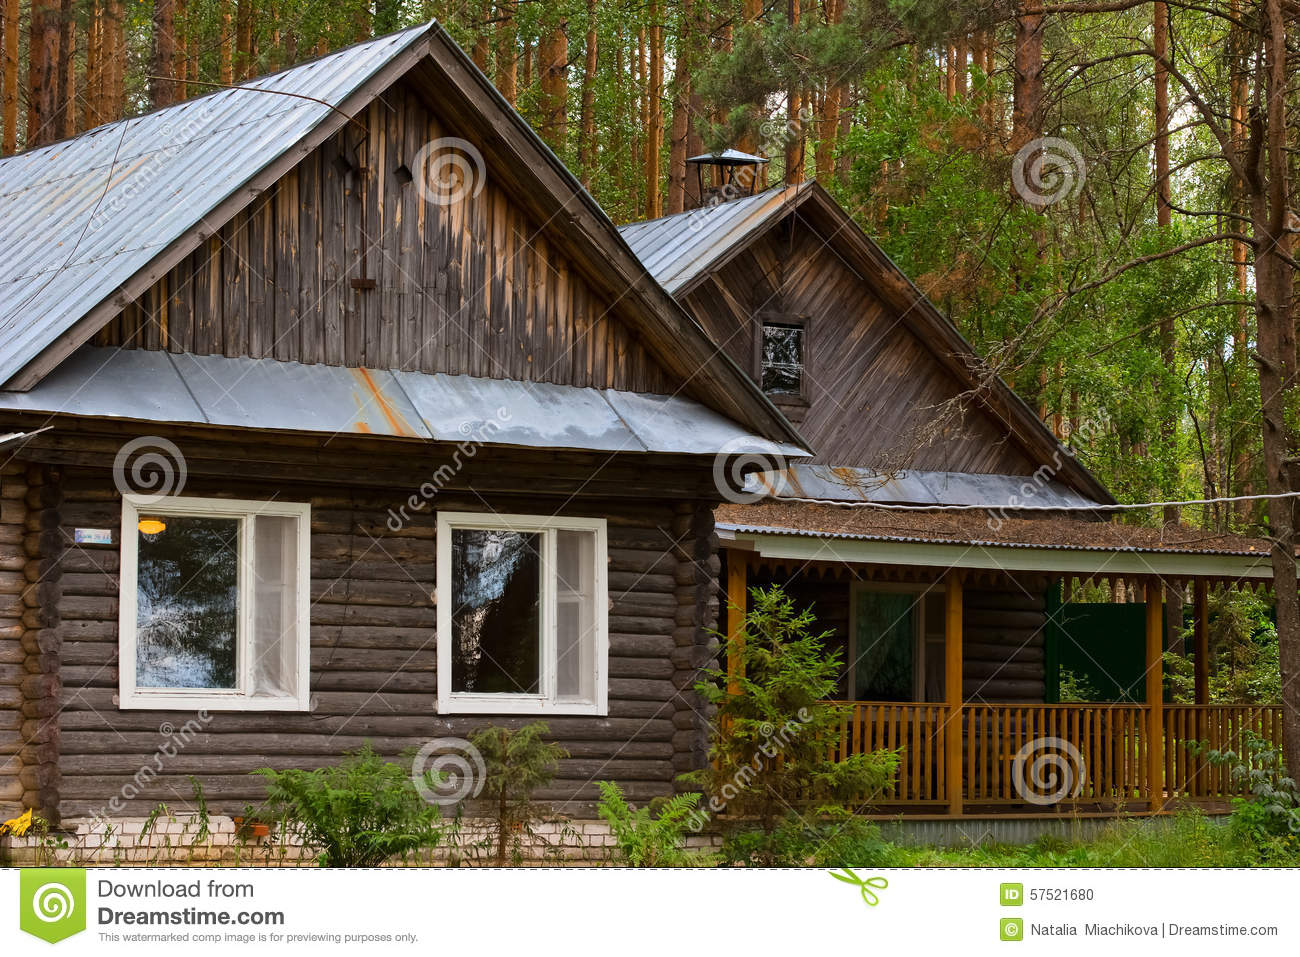 beautiful small house in the woods - Beautiful Small Houses